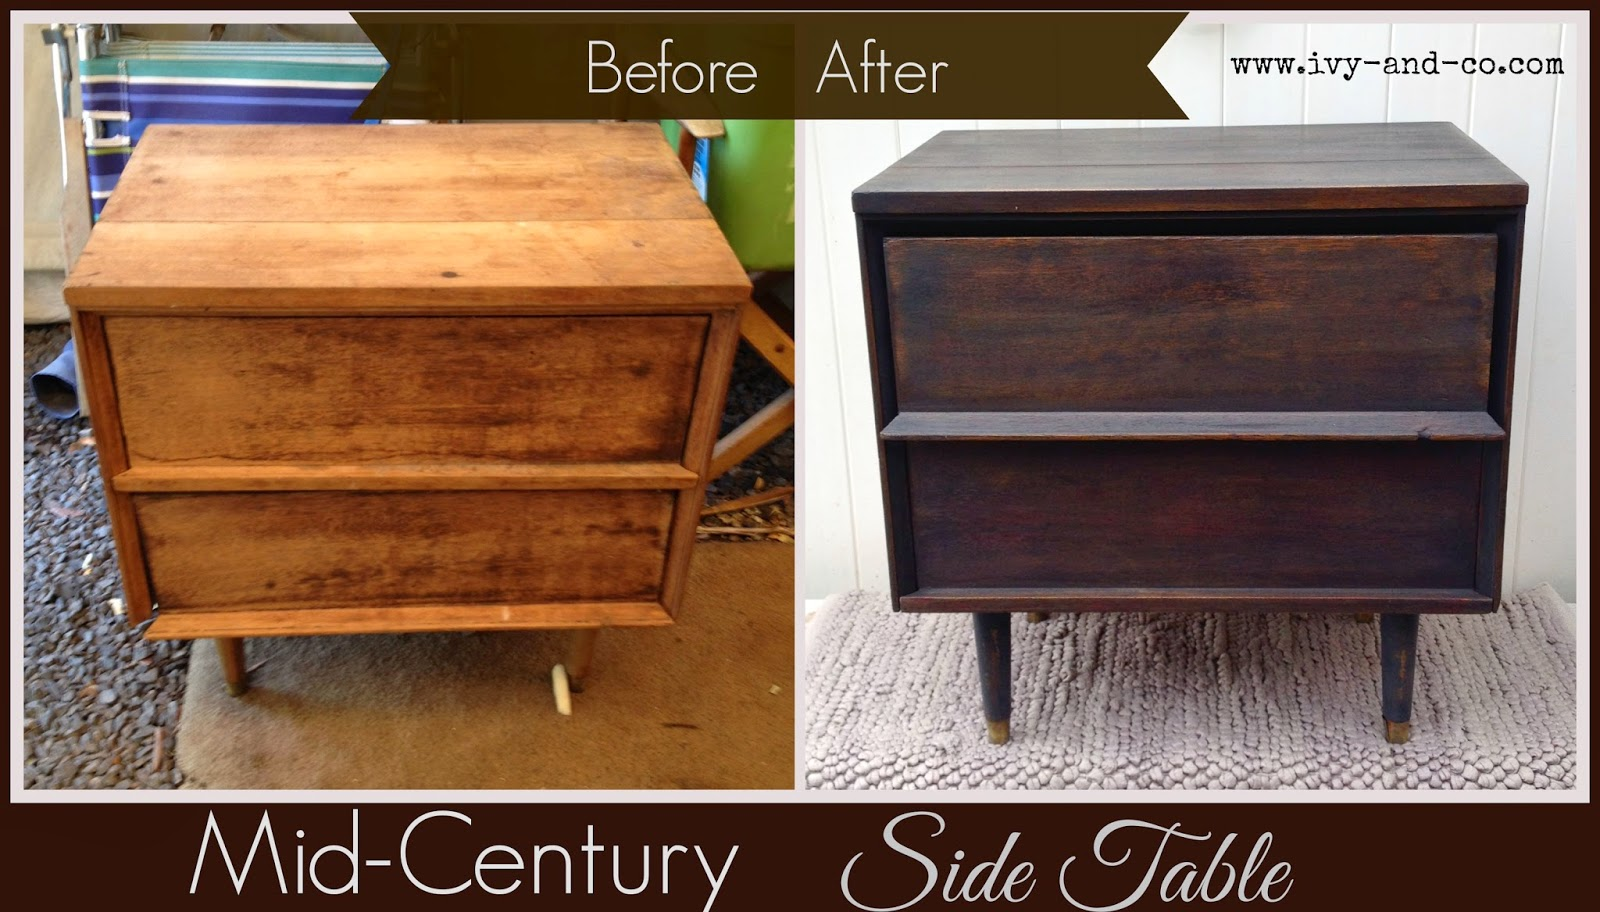 black DIY mid-century side table before and after